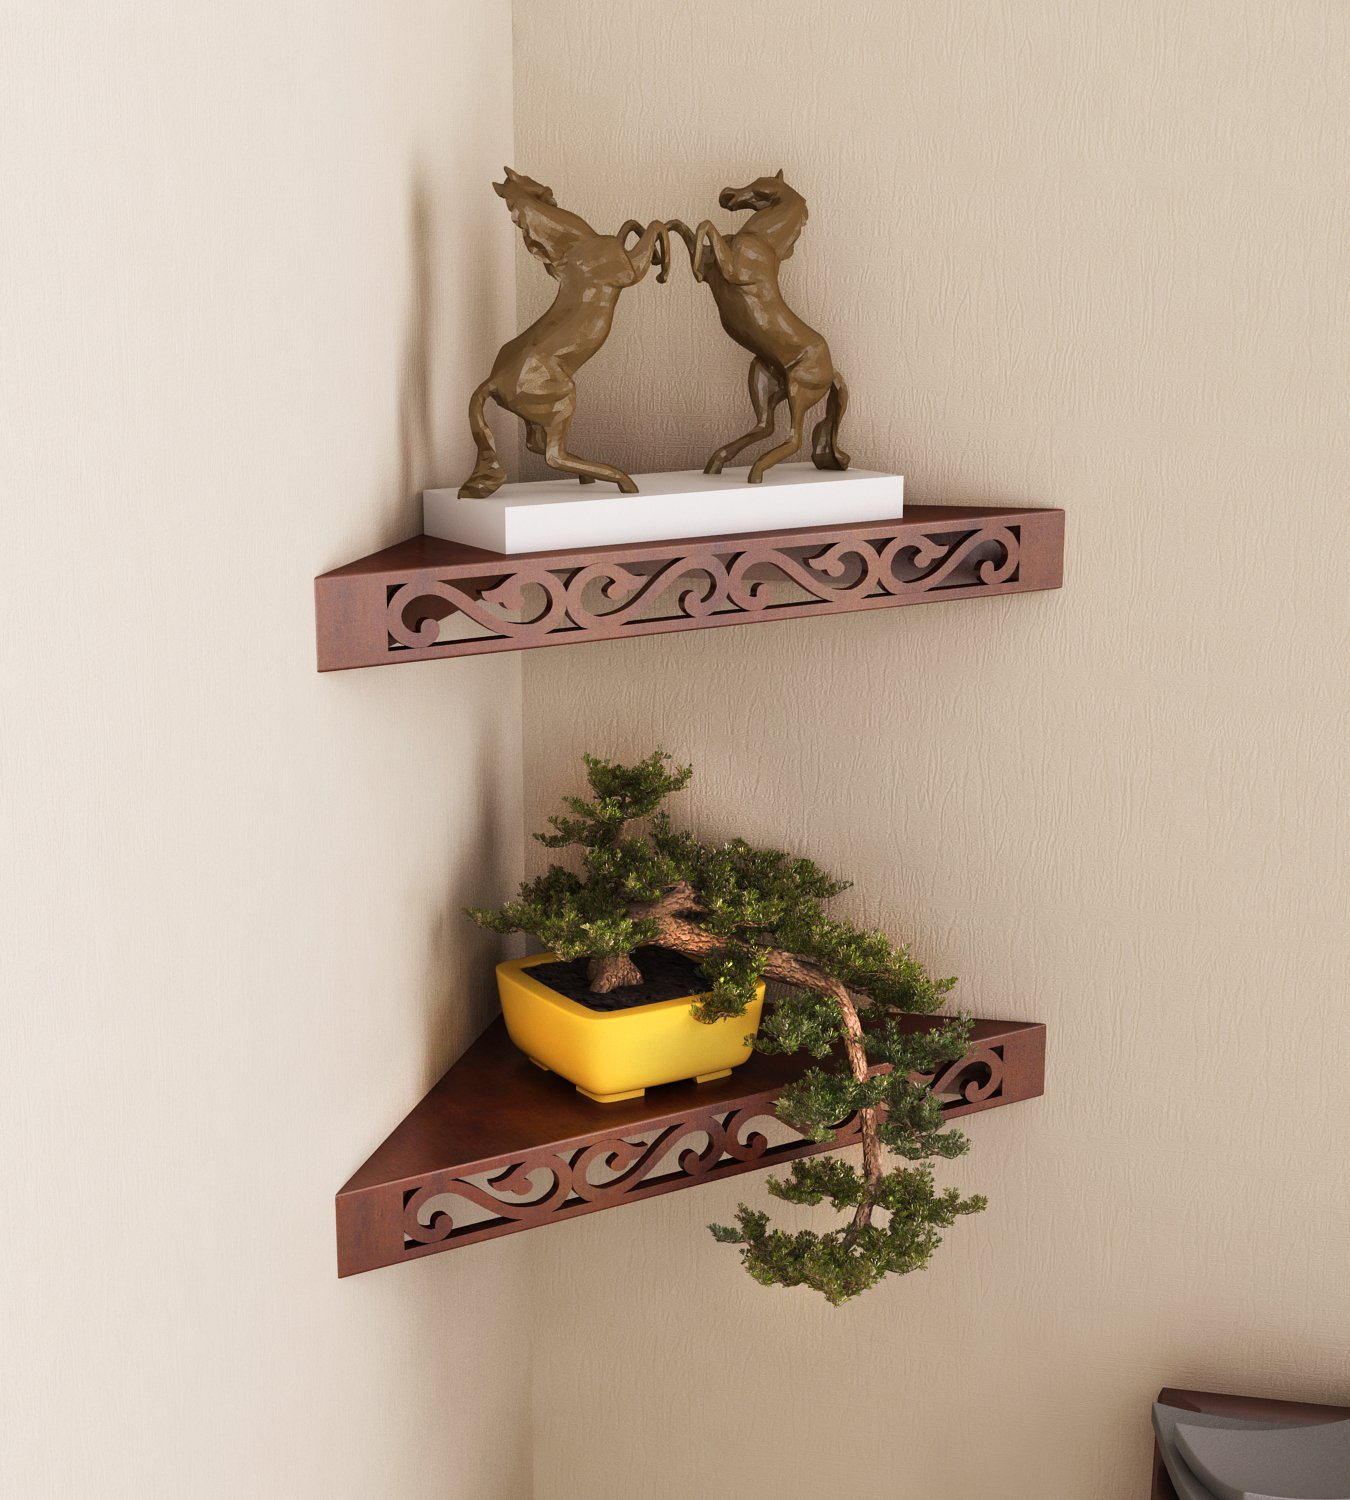 Home Sparkle Corner Wall Shelfs Triangular Wooden Corner Wall Shelves For Living Room Office And Bedroom Set Of 2 Brown Buy Online In Angola At Angola Desertcart Com Productid 75988118